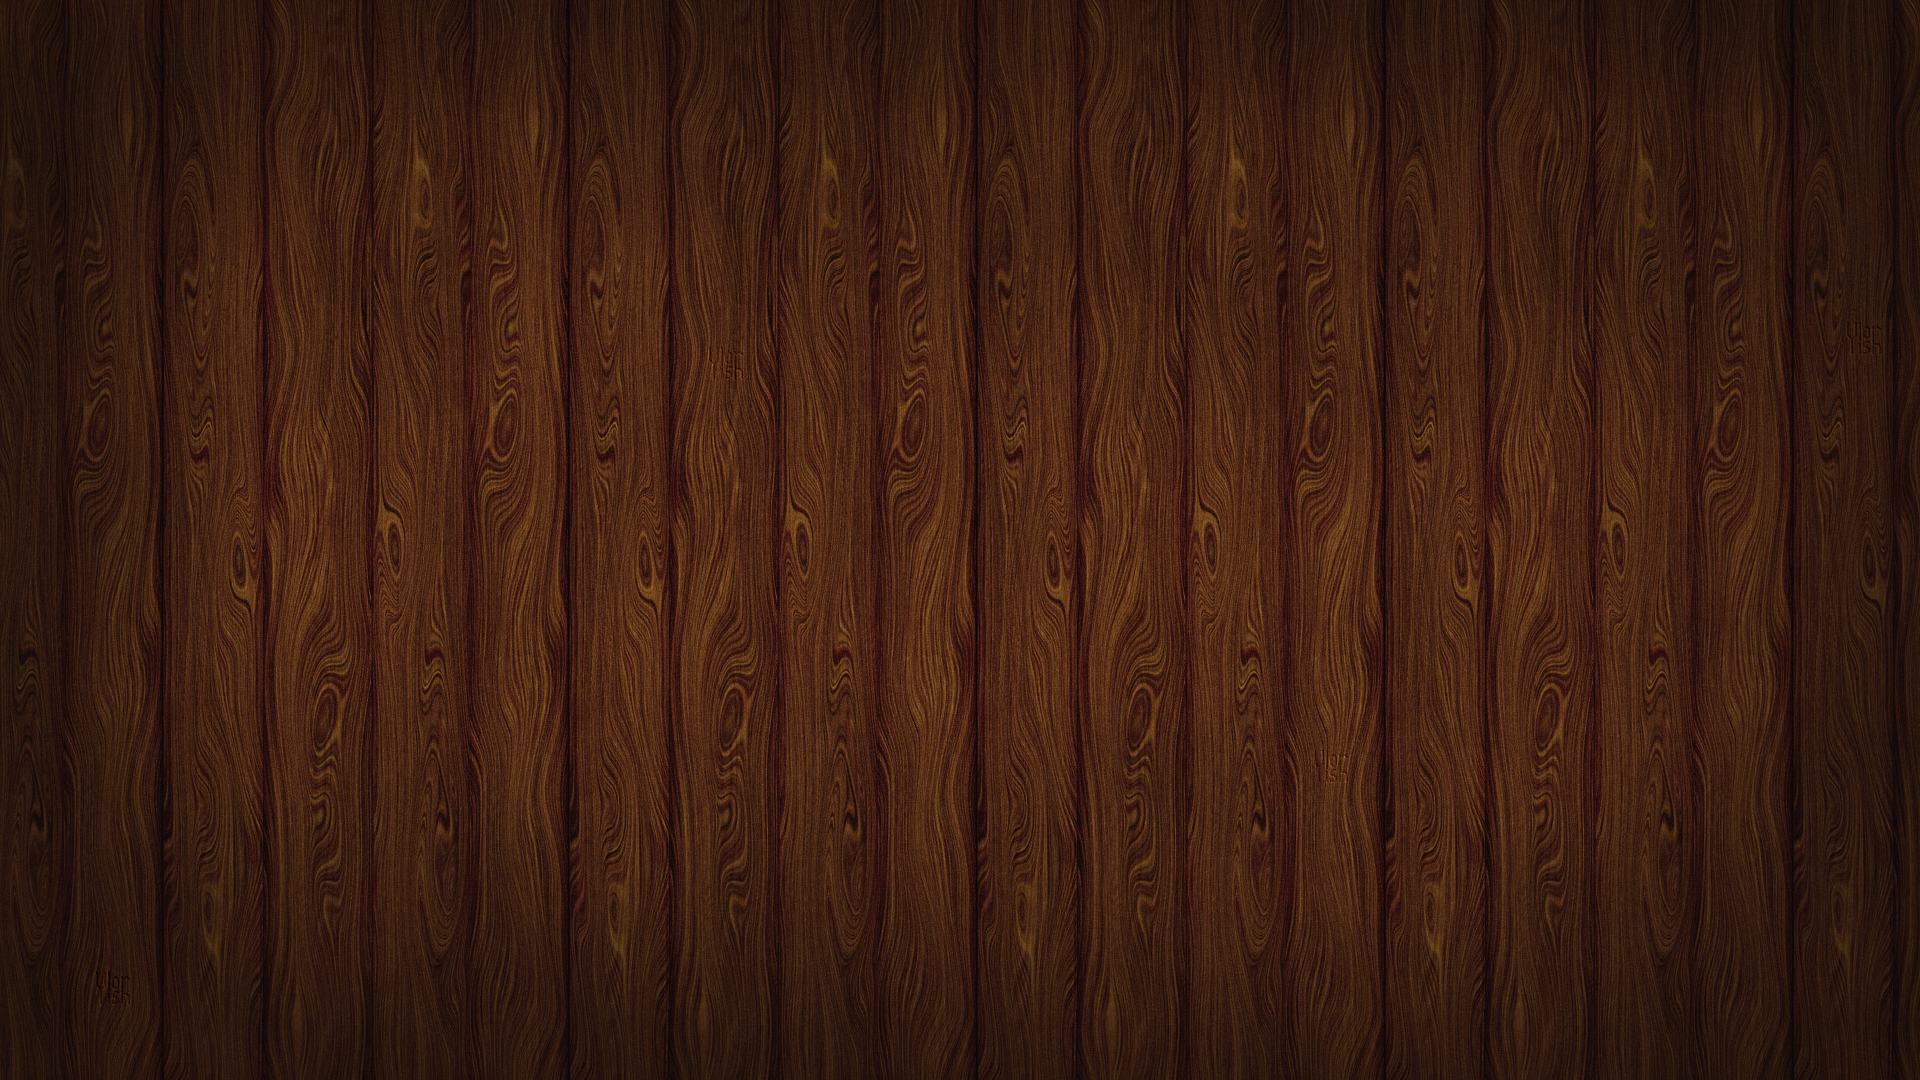 Wood Textures Wallpaper 1920x1080 Wood Textures 1920x1080